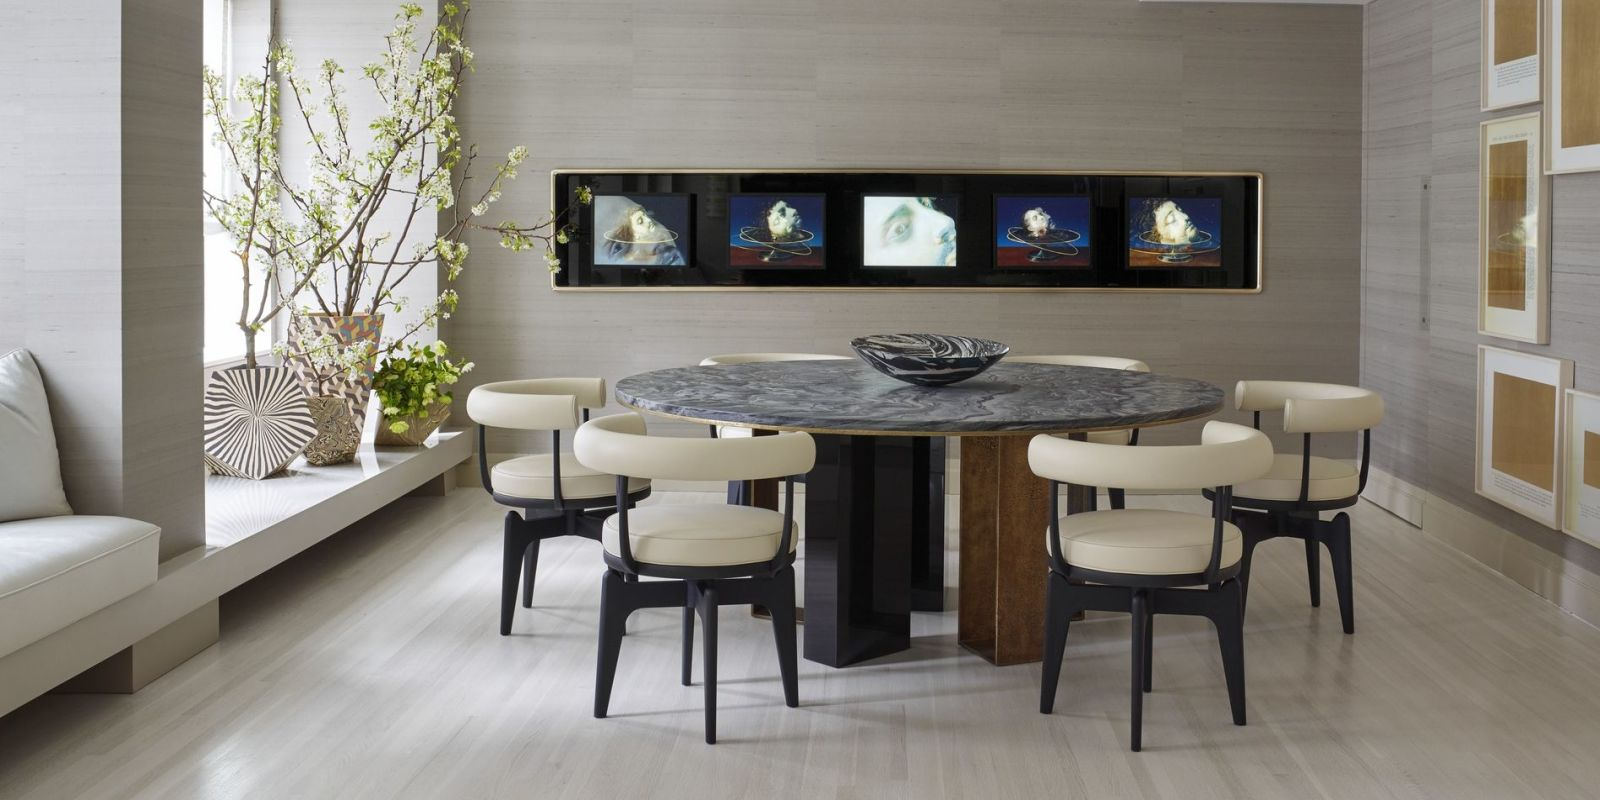 25 modern dining room decorating ideas contemporary for Designs of dining room